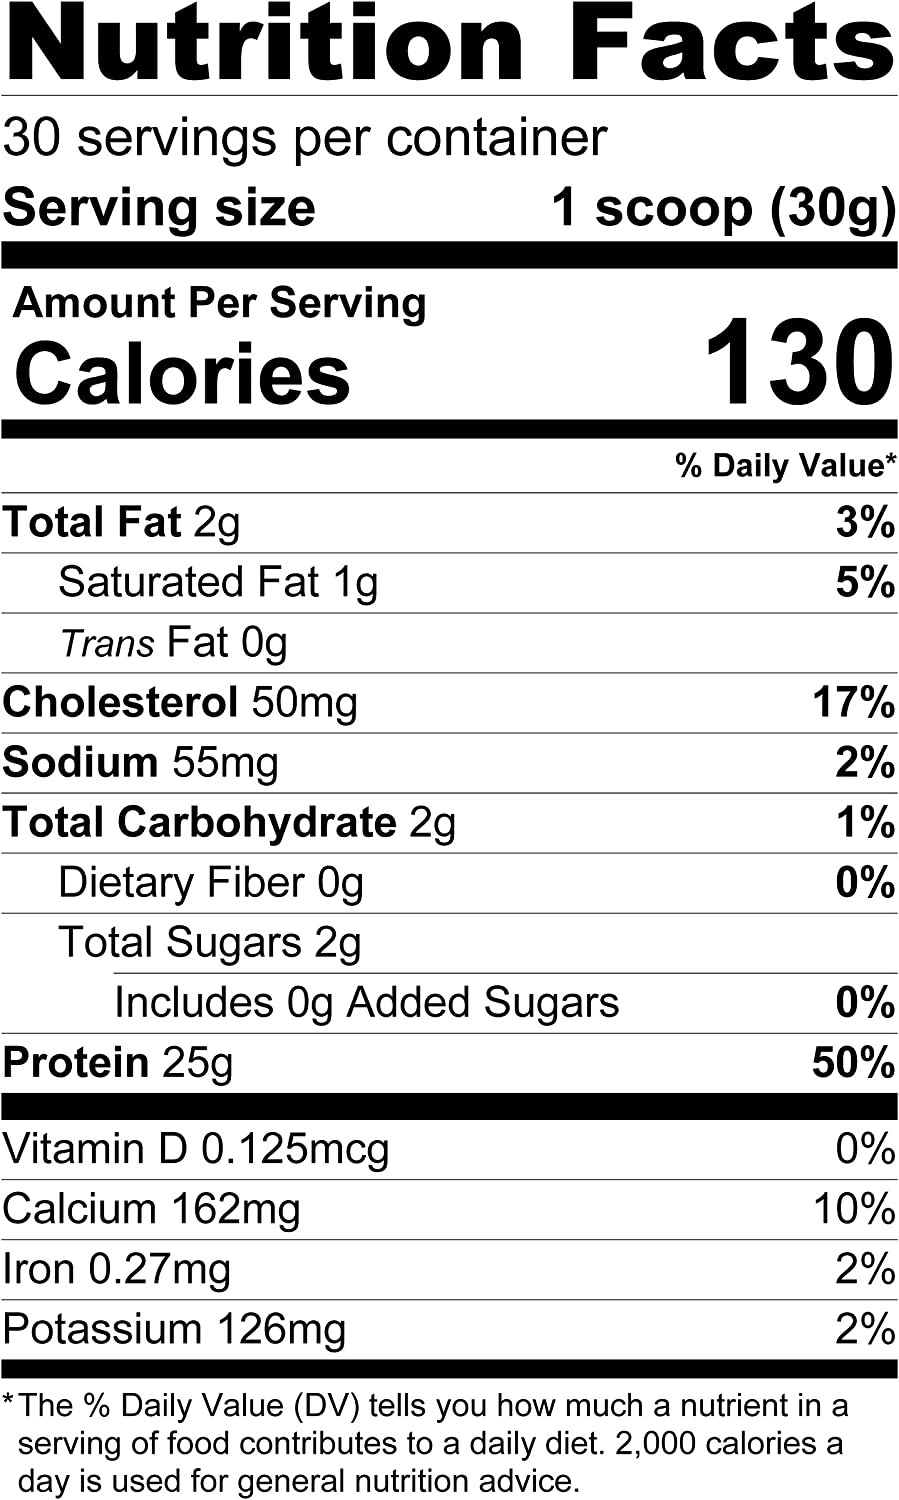 TGS Nutrition 100% Whey Protein, Natural Unflavored, 2 Pound by TGS Nutrition